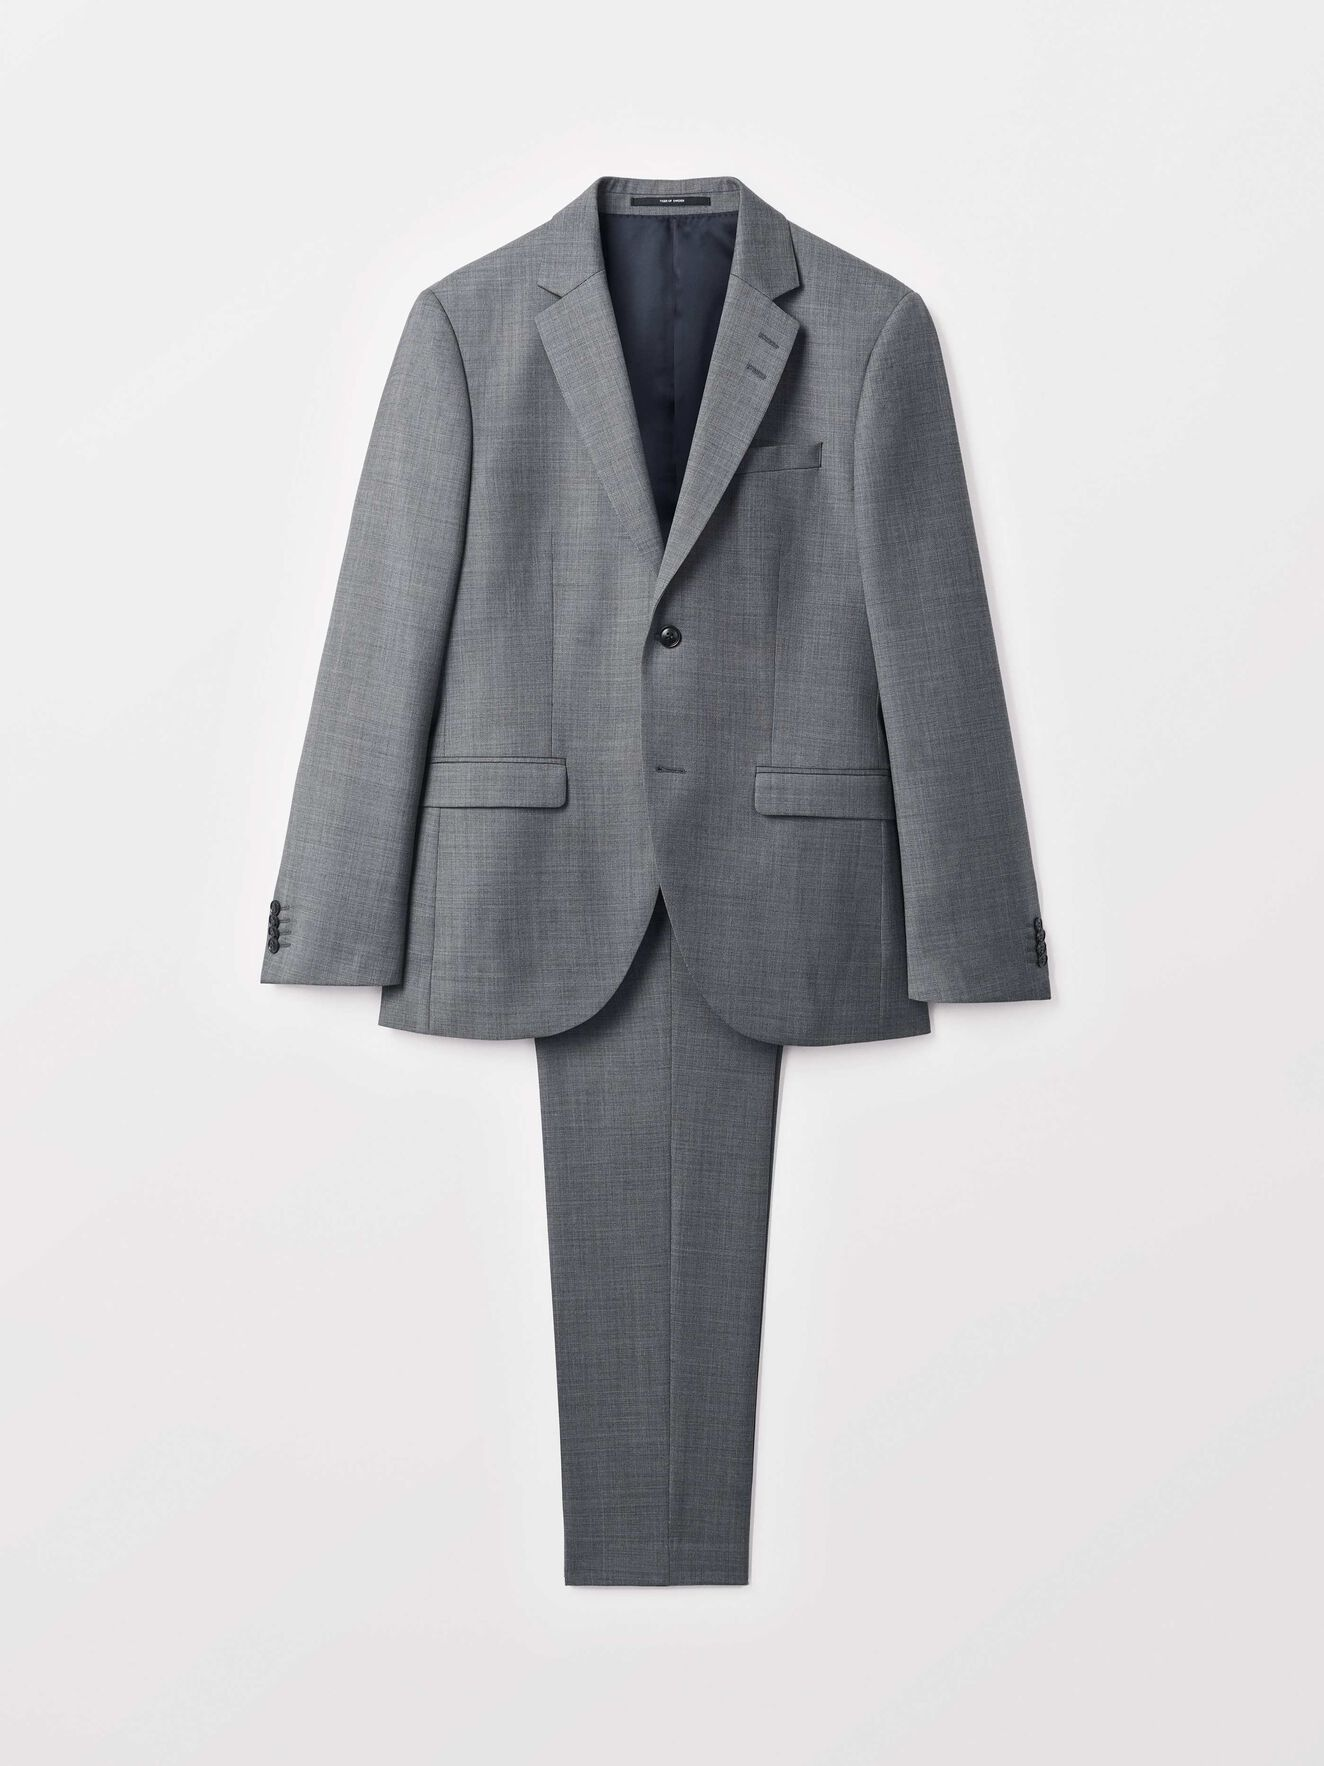 S.Jamonte Suit in Iron Gate from Tiger of Sweden